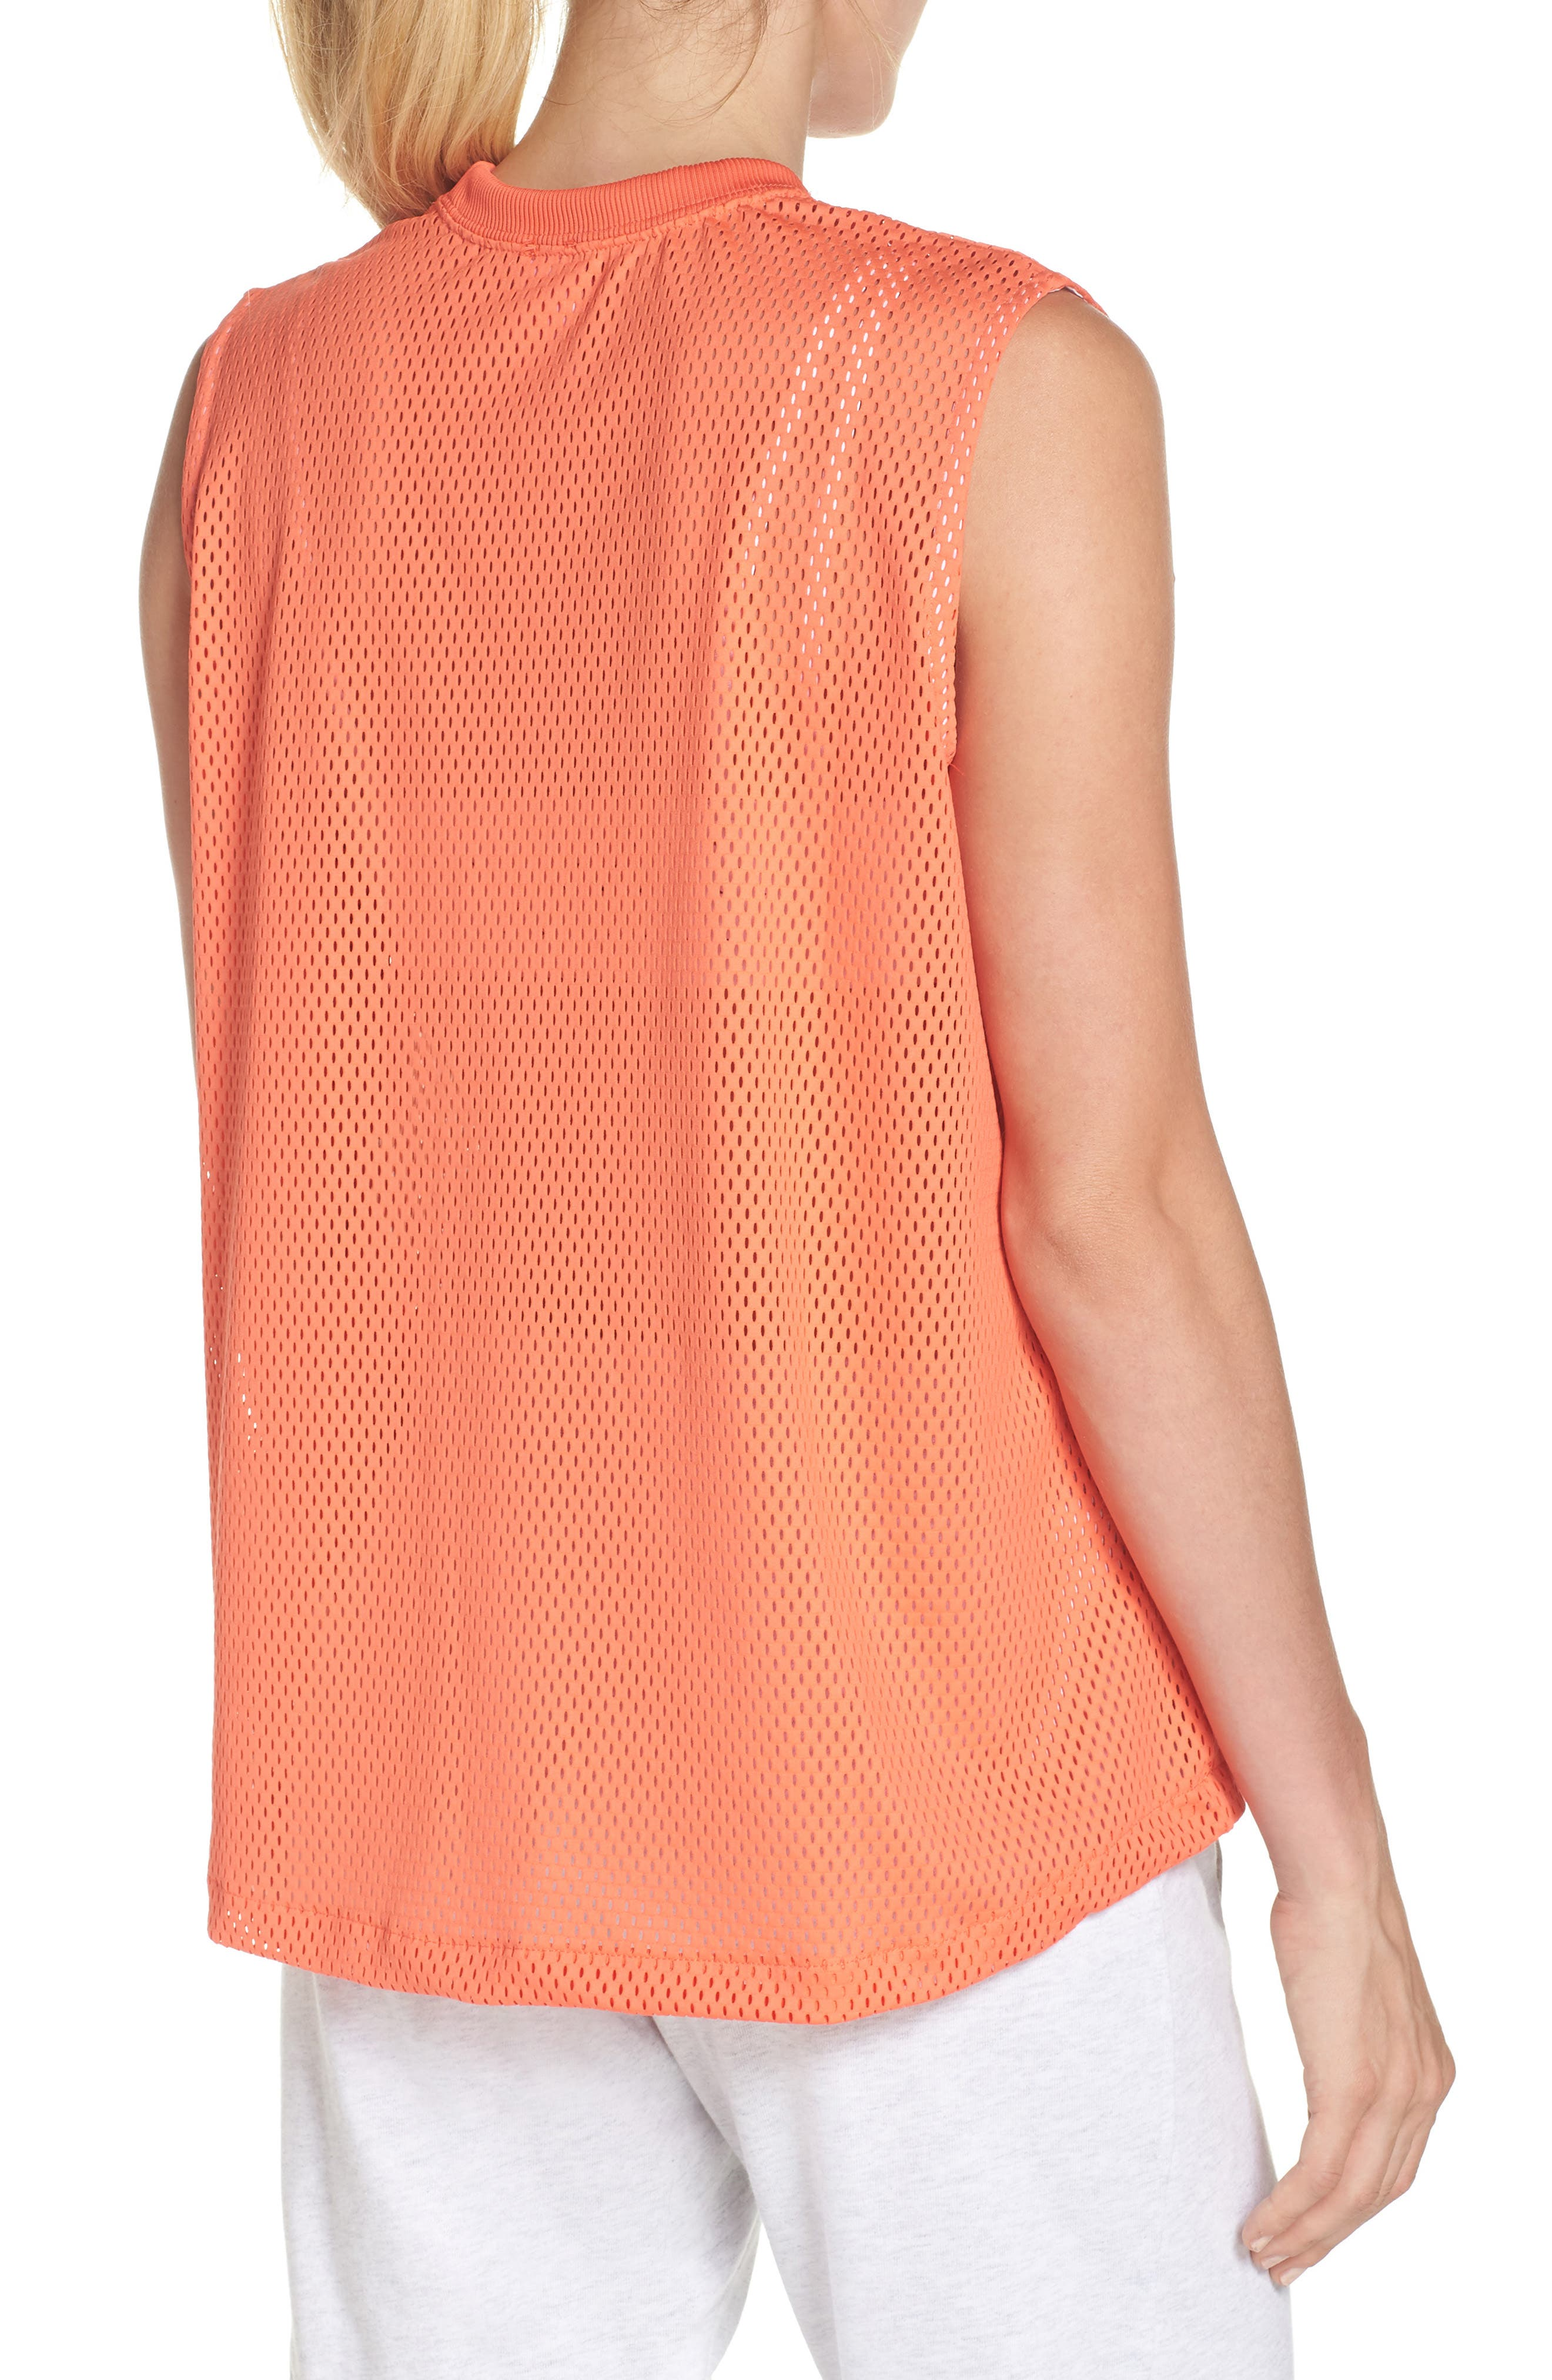 Sportswear Women's Dry Mesh Muscle Tank,                             Alternate thumbnail 2, color,                             Rush Coral/ White